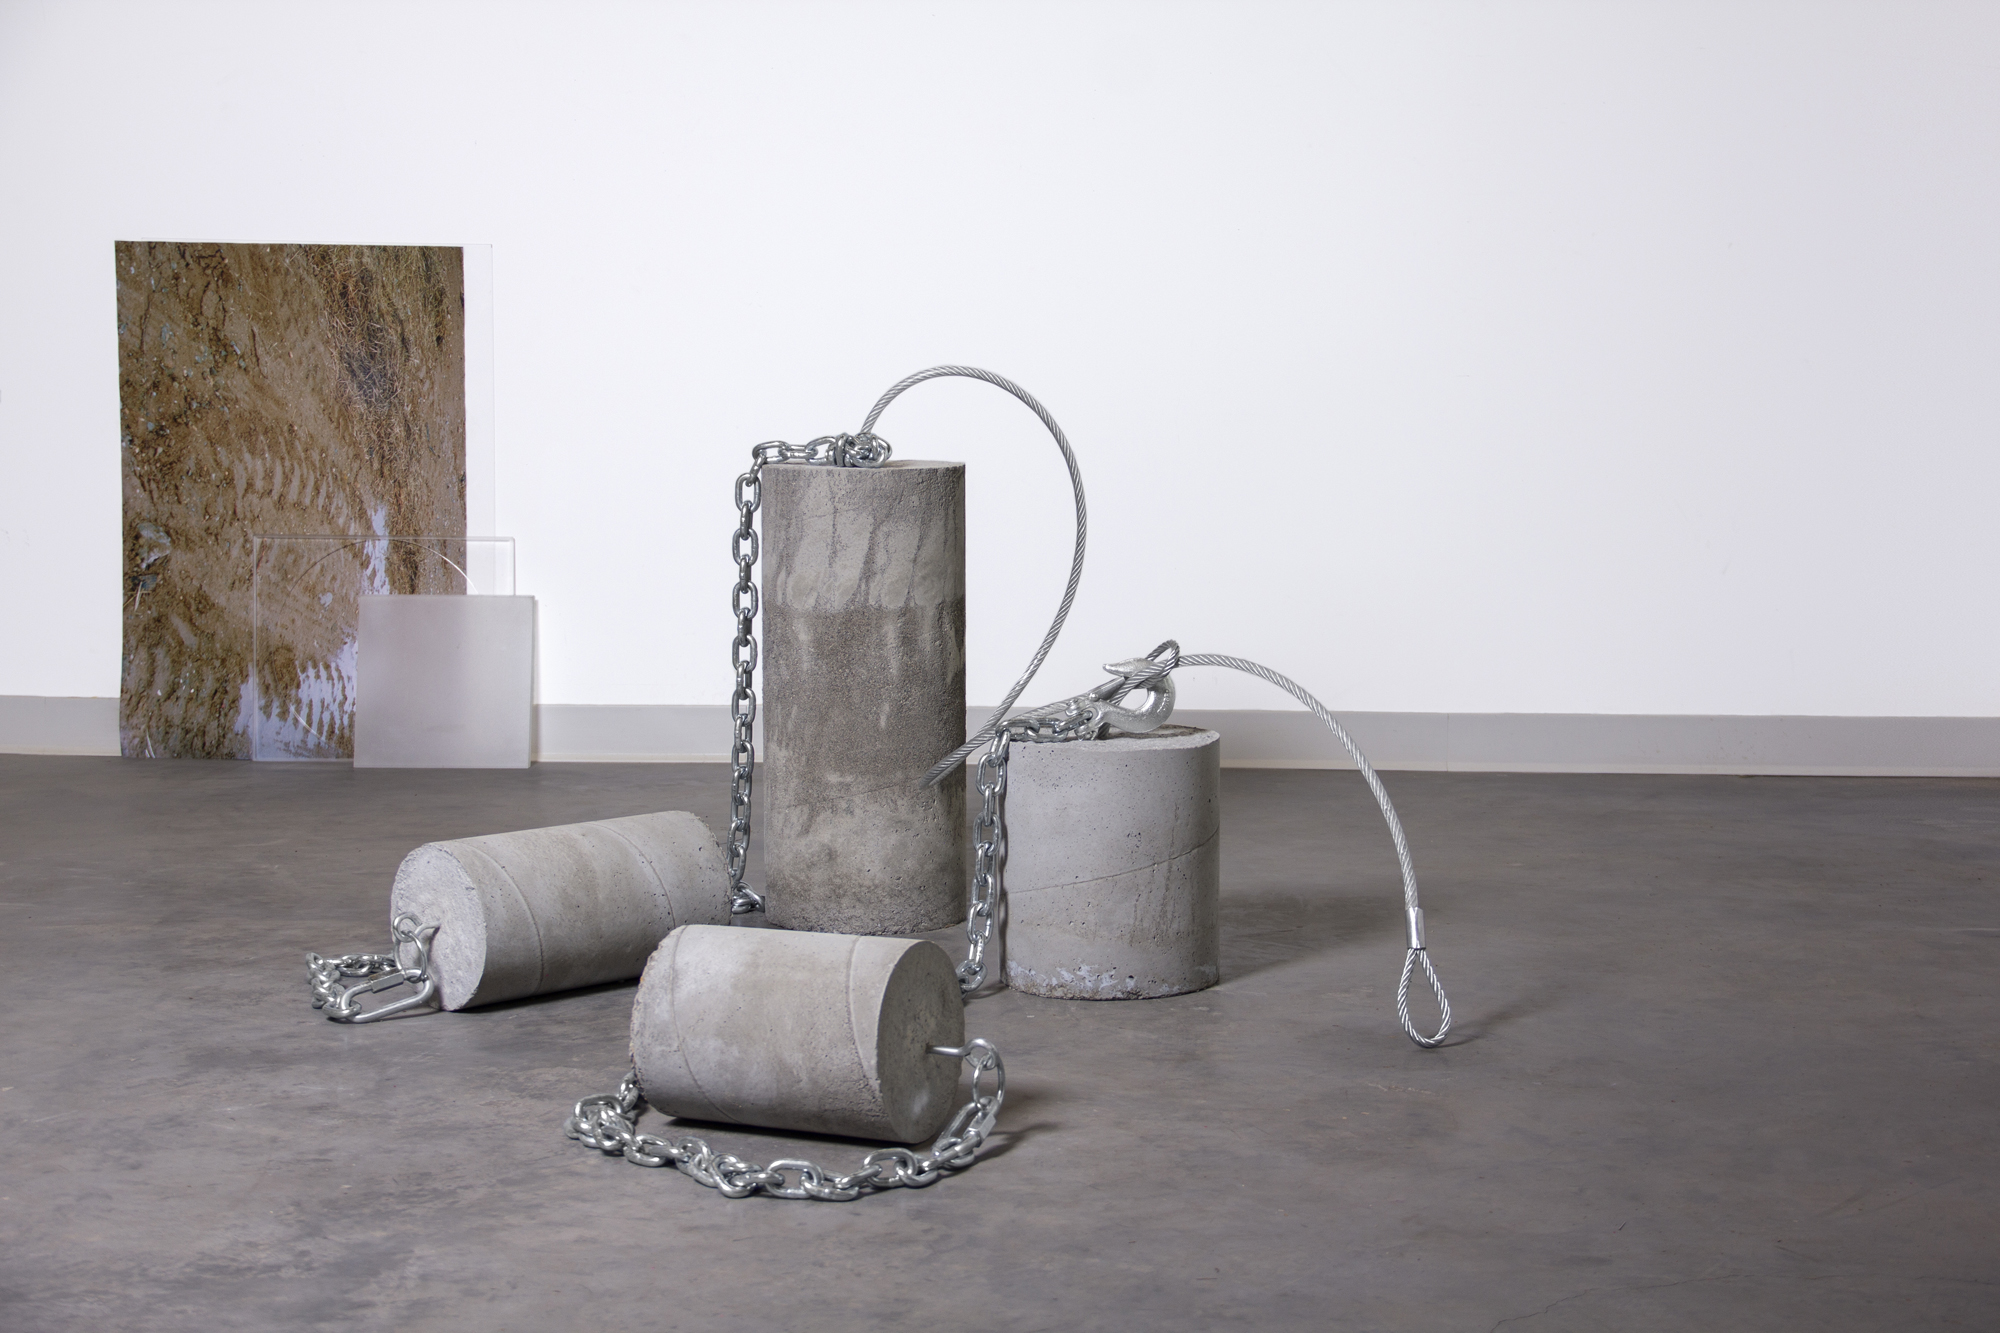 Performance I: Chained Cement, Dirt and Acrylic, 2019